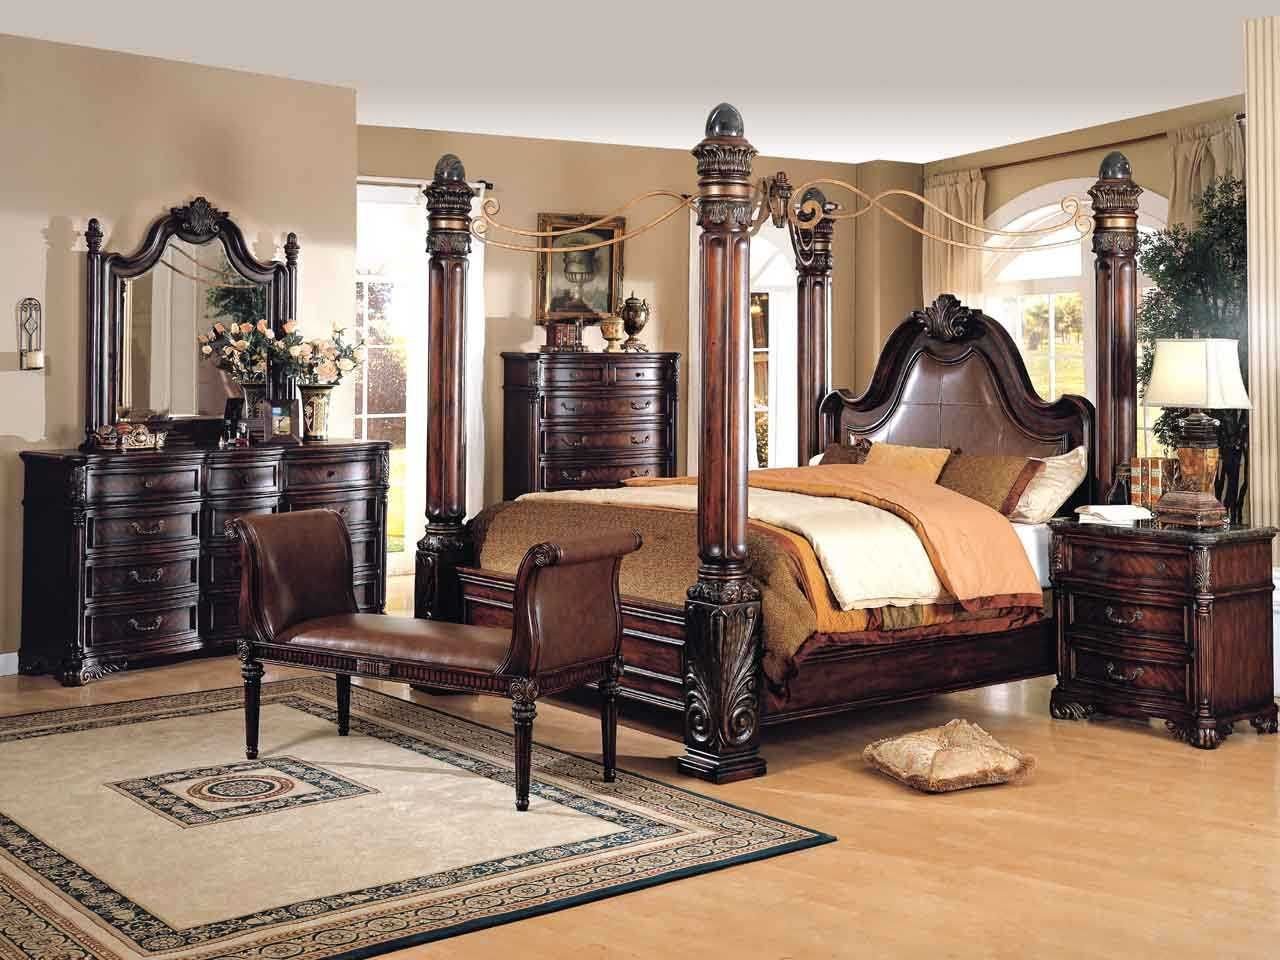 4 Post Canopy Bed